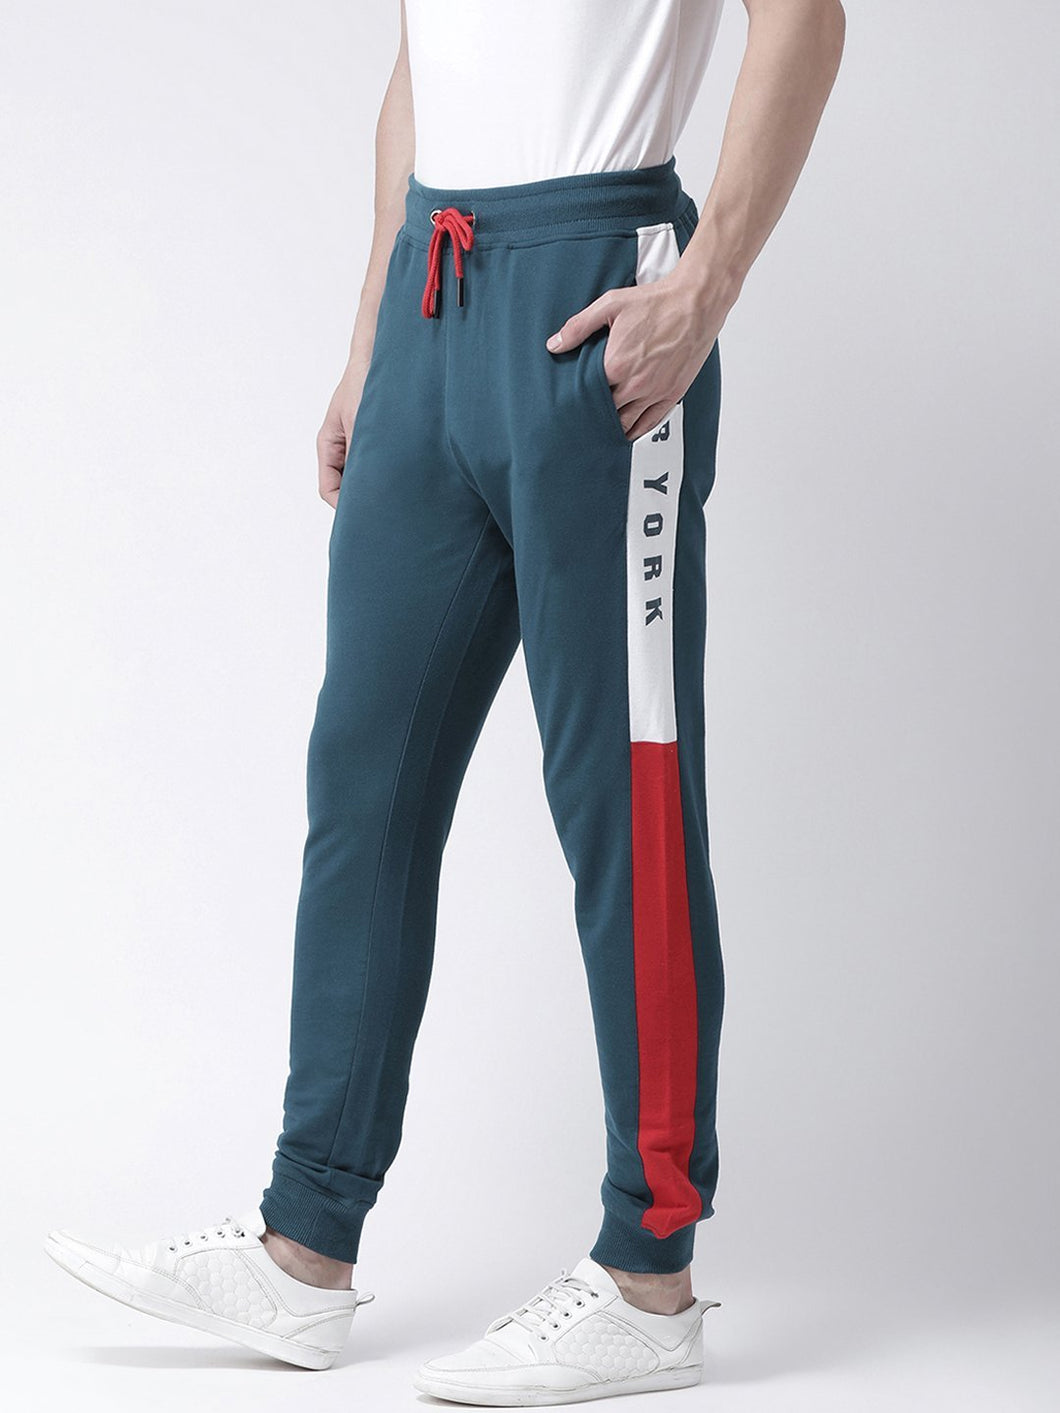 Men's Teal Blue Solid Slim-Fit Jogger PRICE : Rs.749 | Book For Rs.31 Only